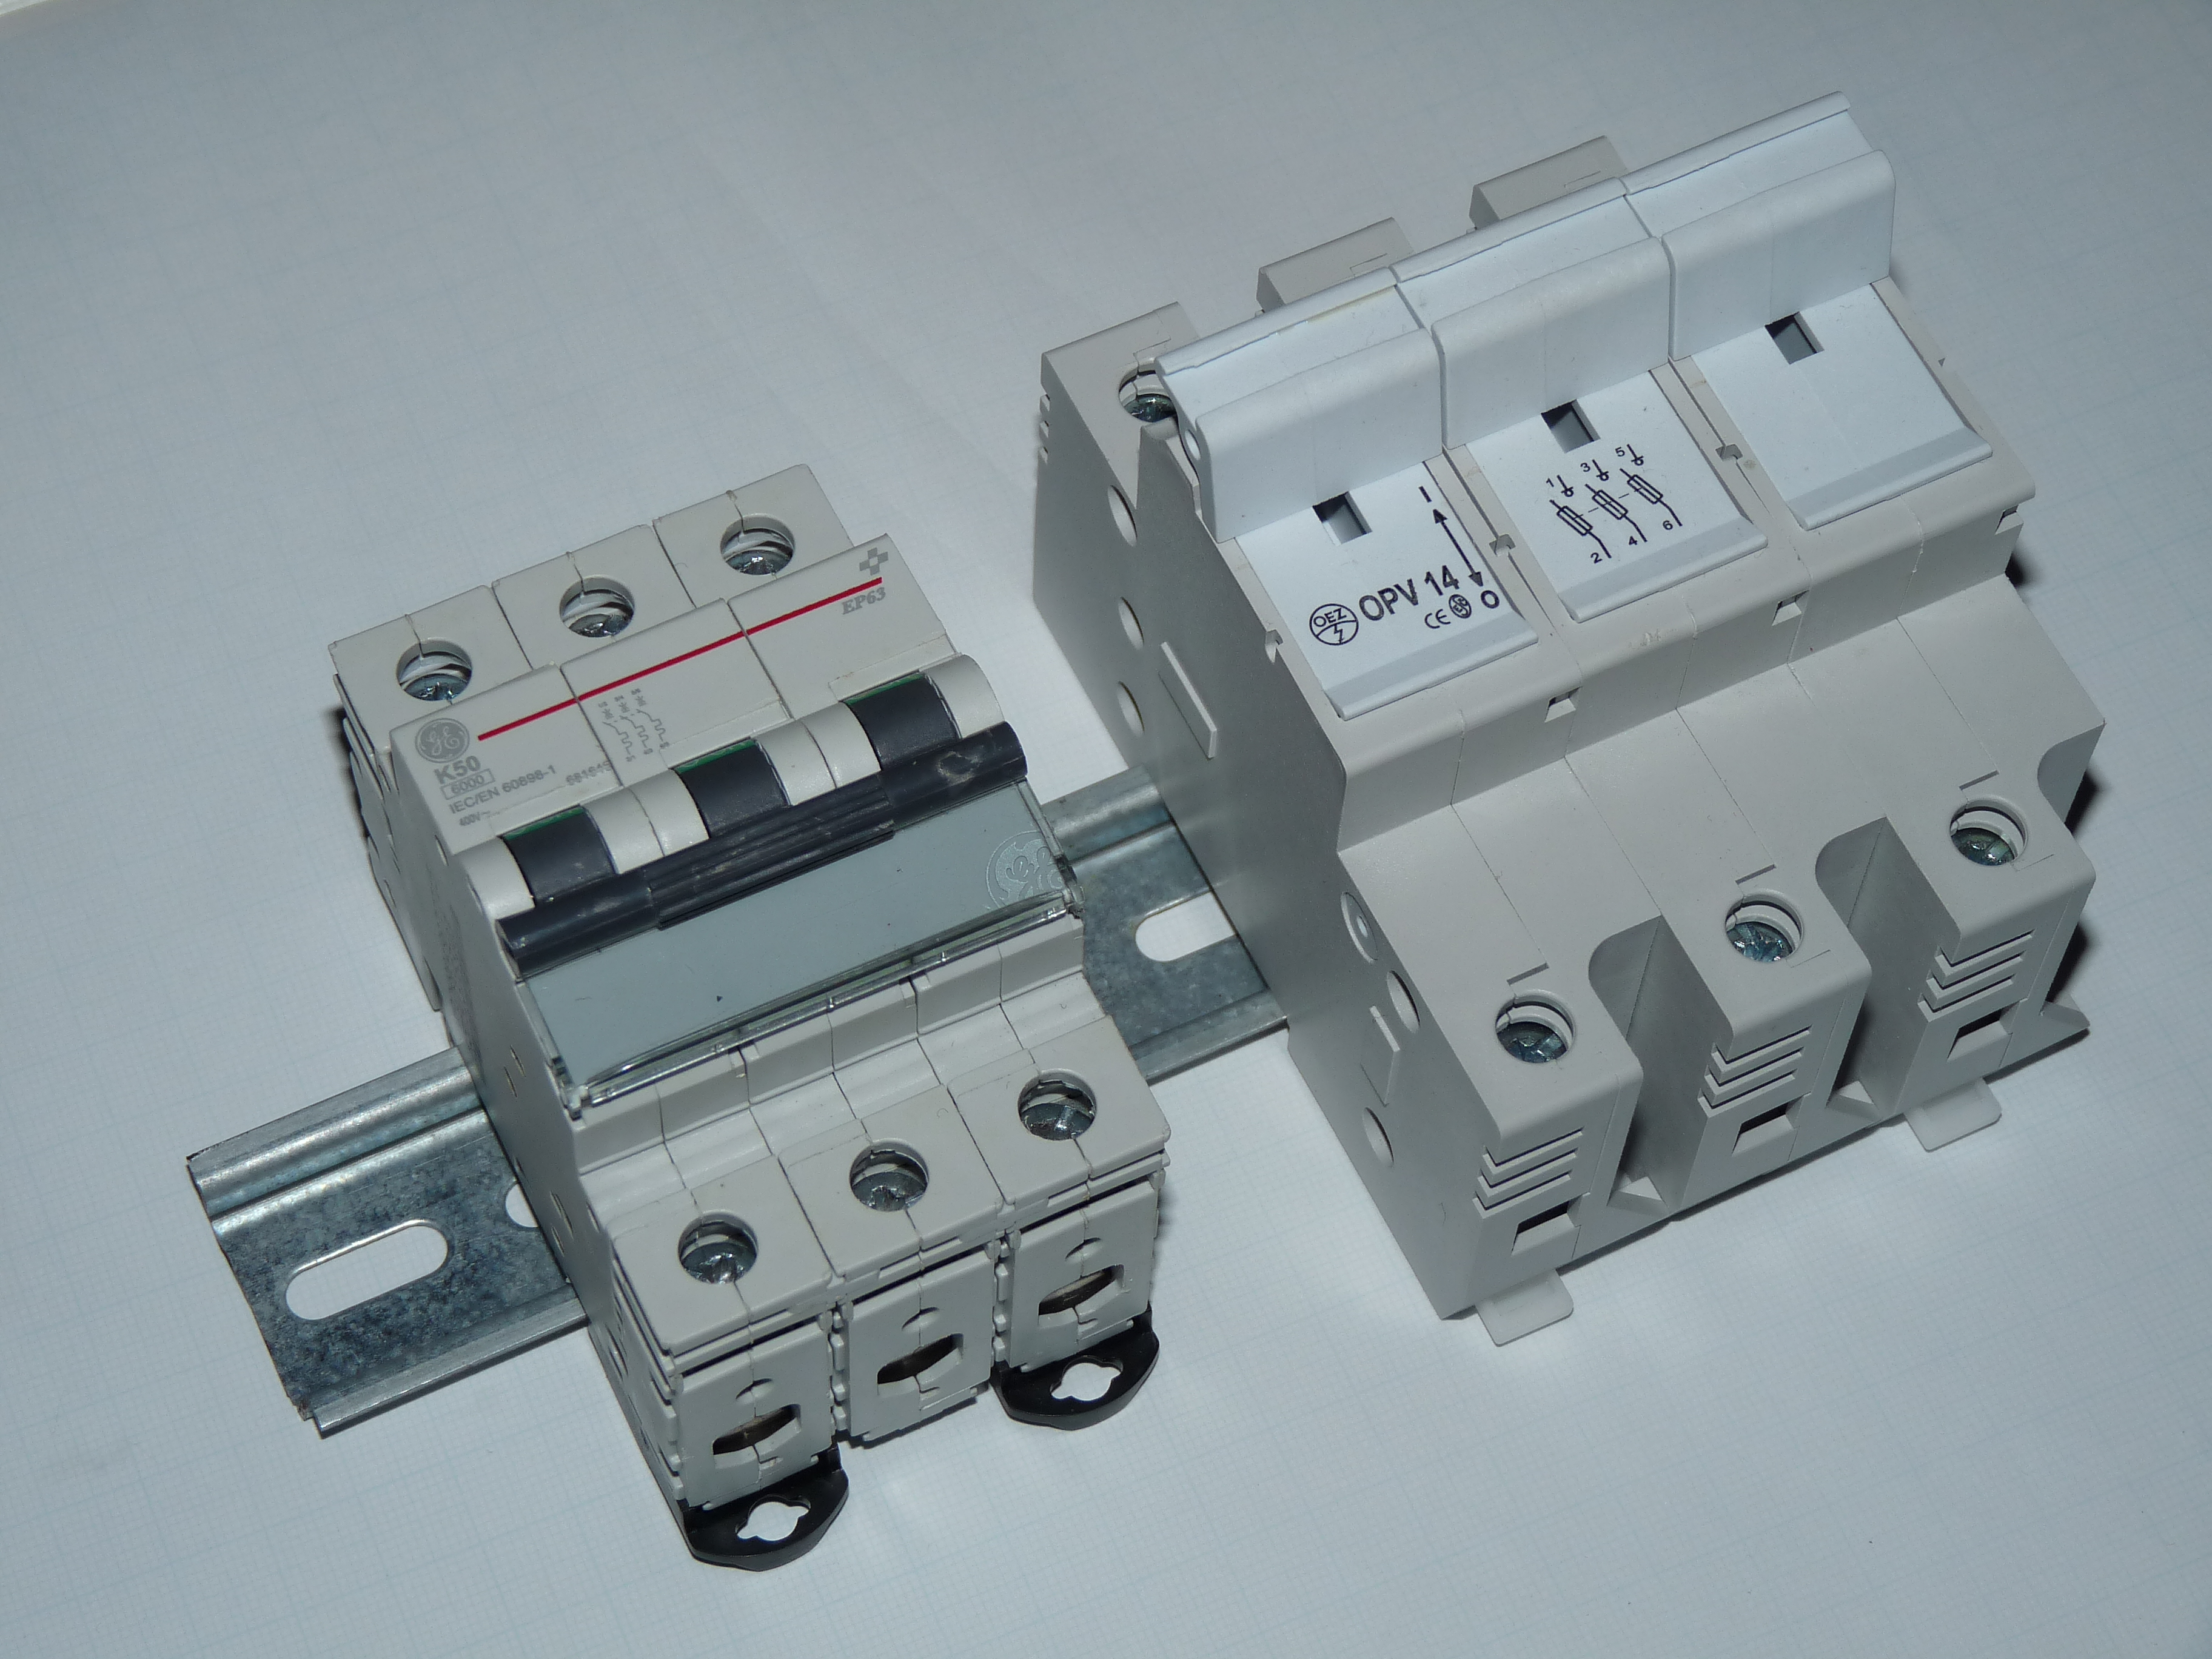 file comparing circuit breaker and fuse disconnector, the same Fuses and Fuse Boxes file comparing circuit breaker and fuse disconnector, the same current jpg